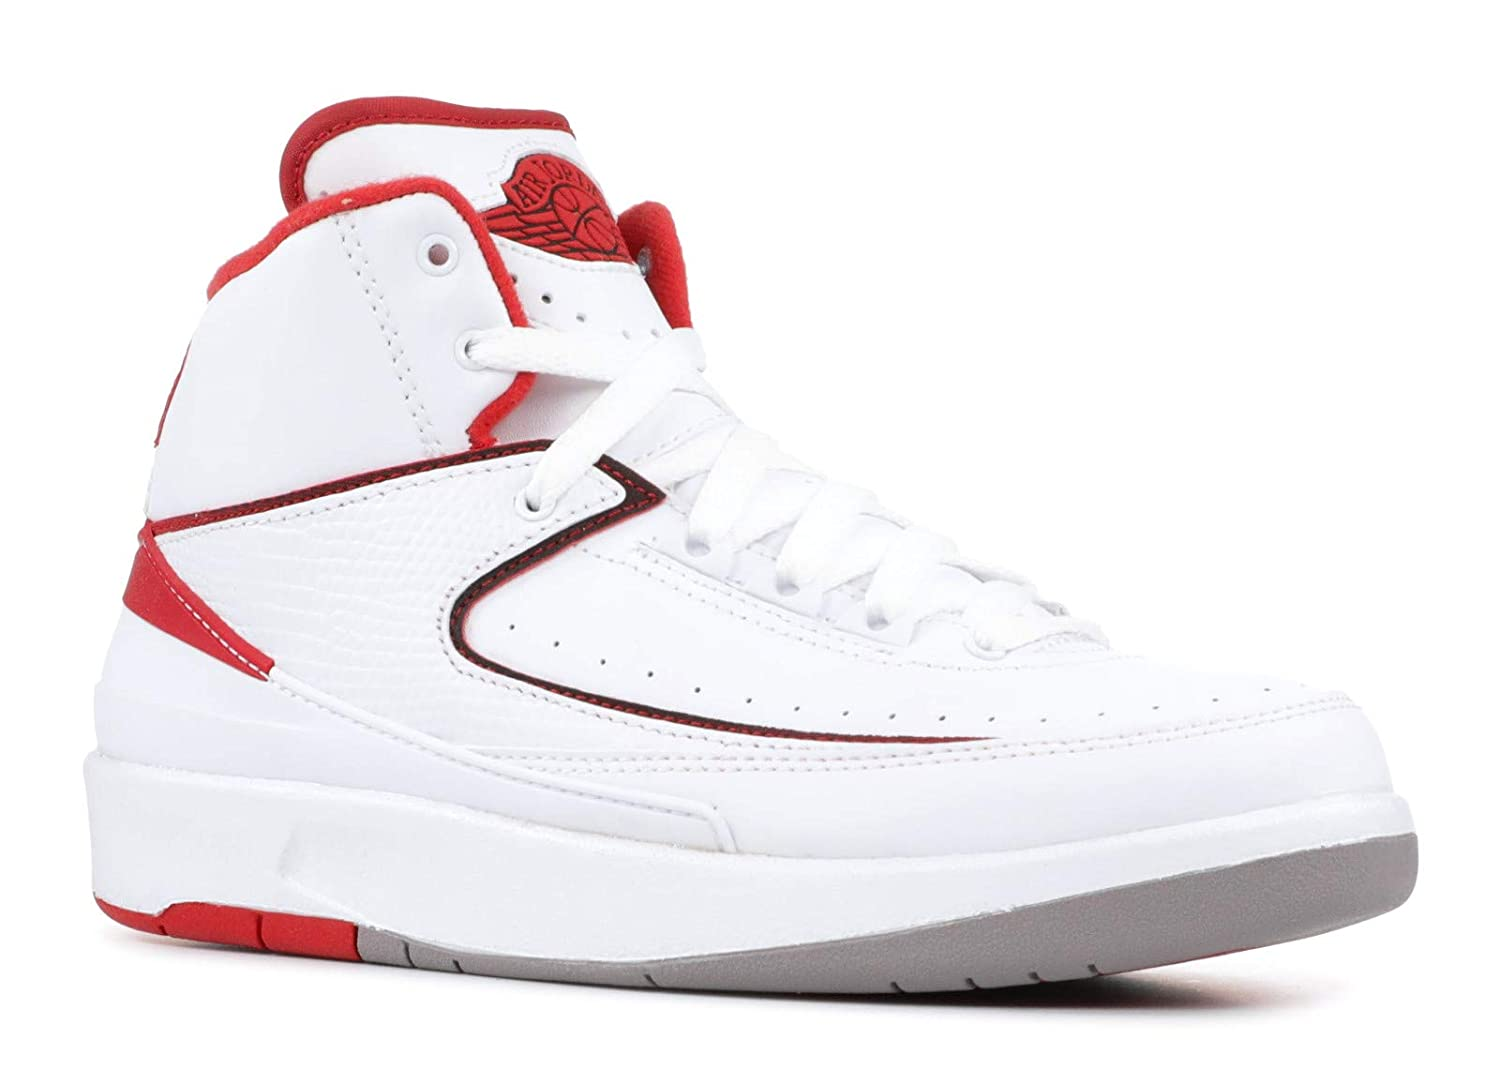 low priced 97e2a 2cc97 NIKE air Jordan 2 Retro BG hi top Trainers 395718 Sneakers Shoes (UK 5 US  5.5Y EU 38, White Black Varsity red Cement Grey 102)